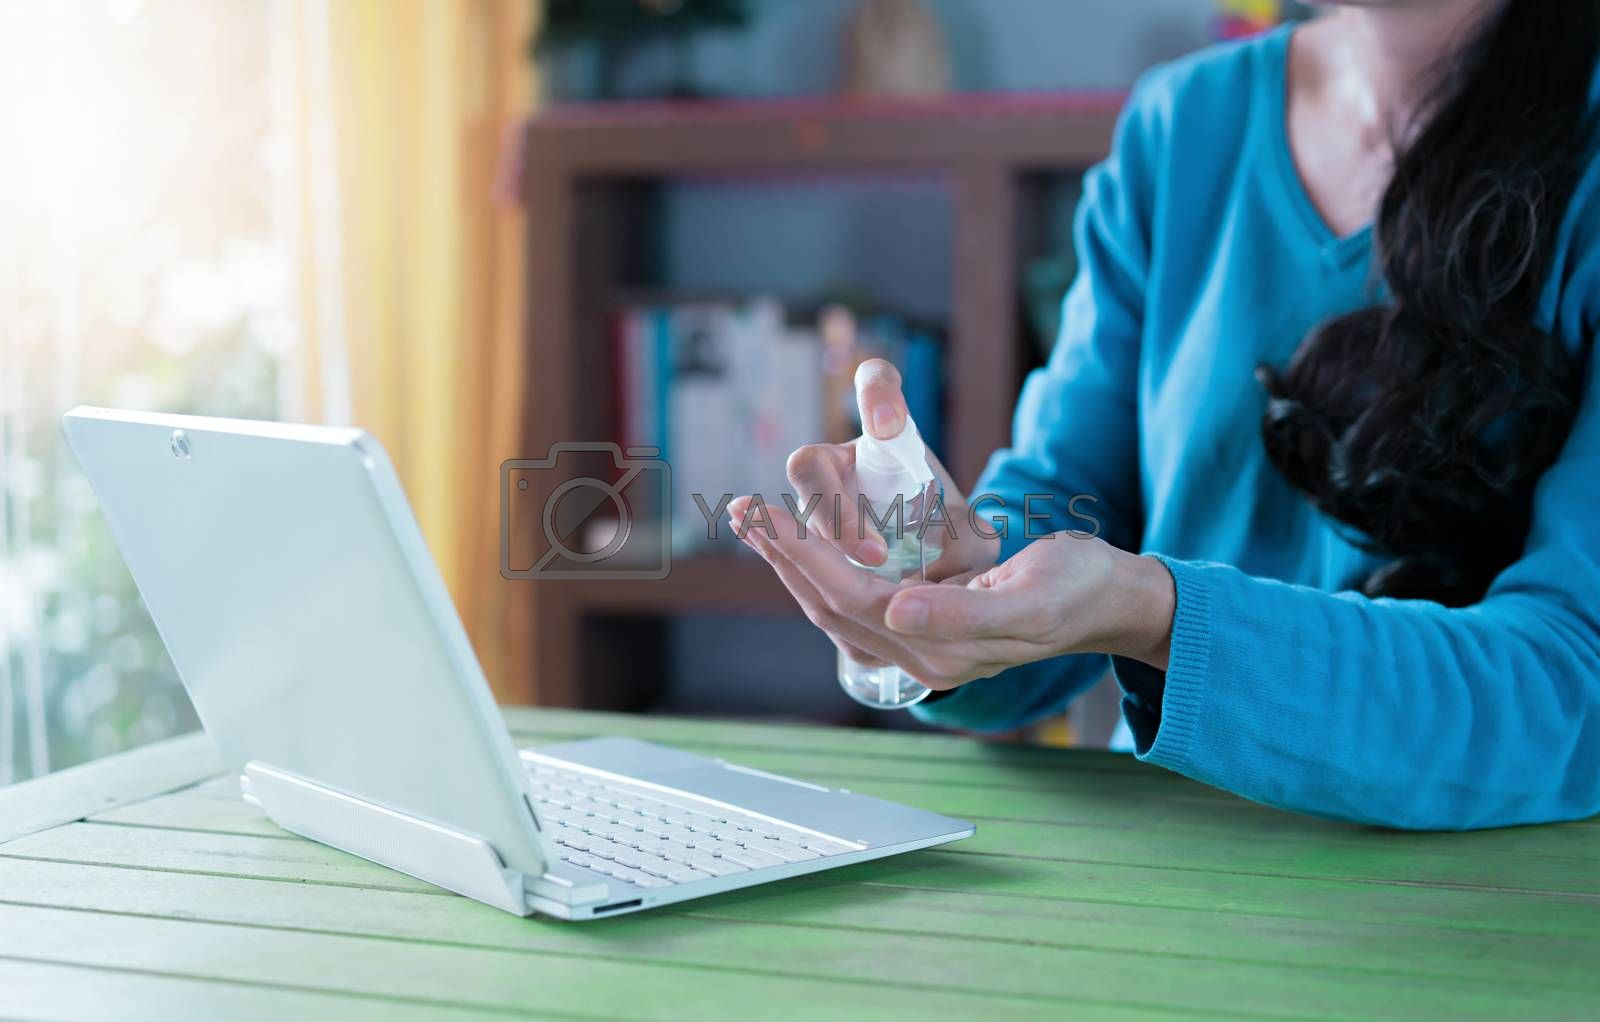 Royalty free image of Woman working from home. Cleaning her hands with sanitizer gel. by Buttus_casso